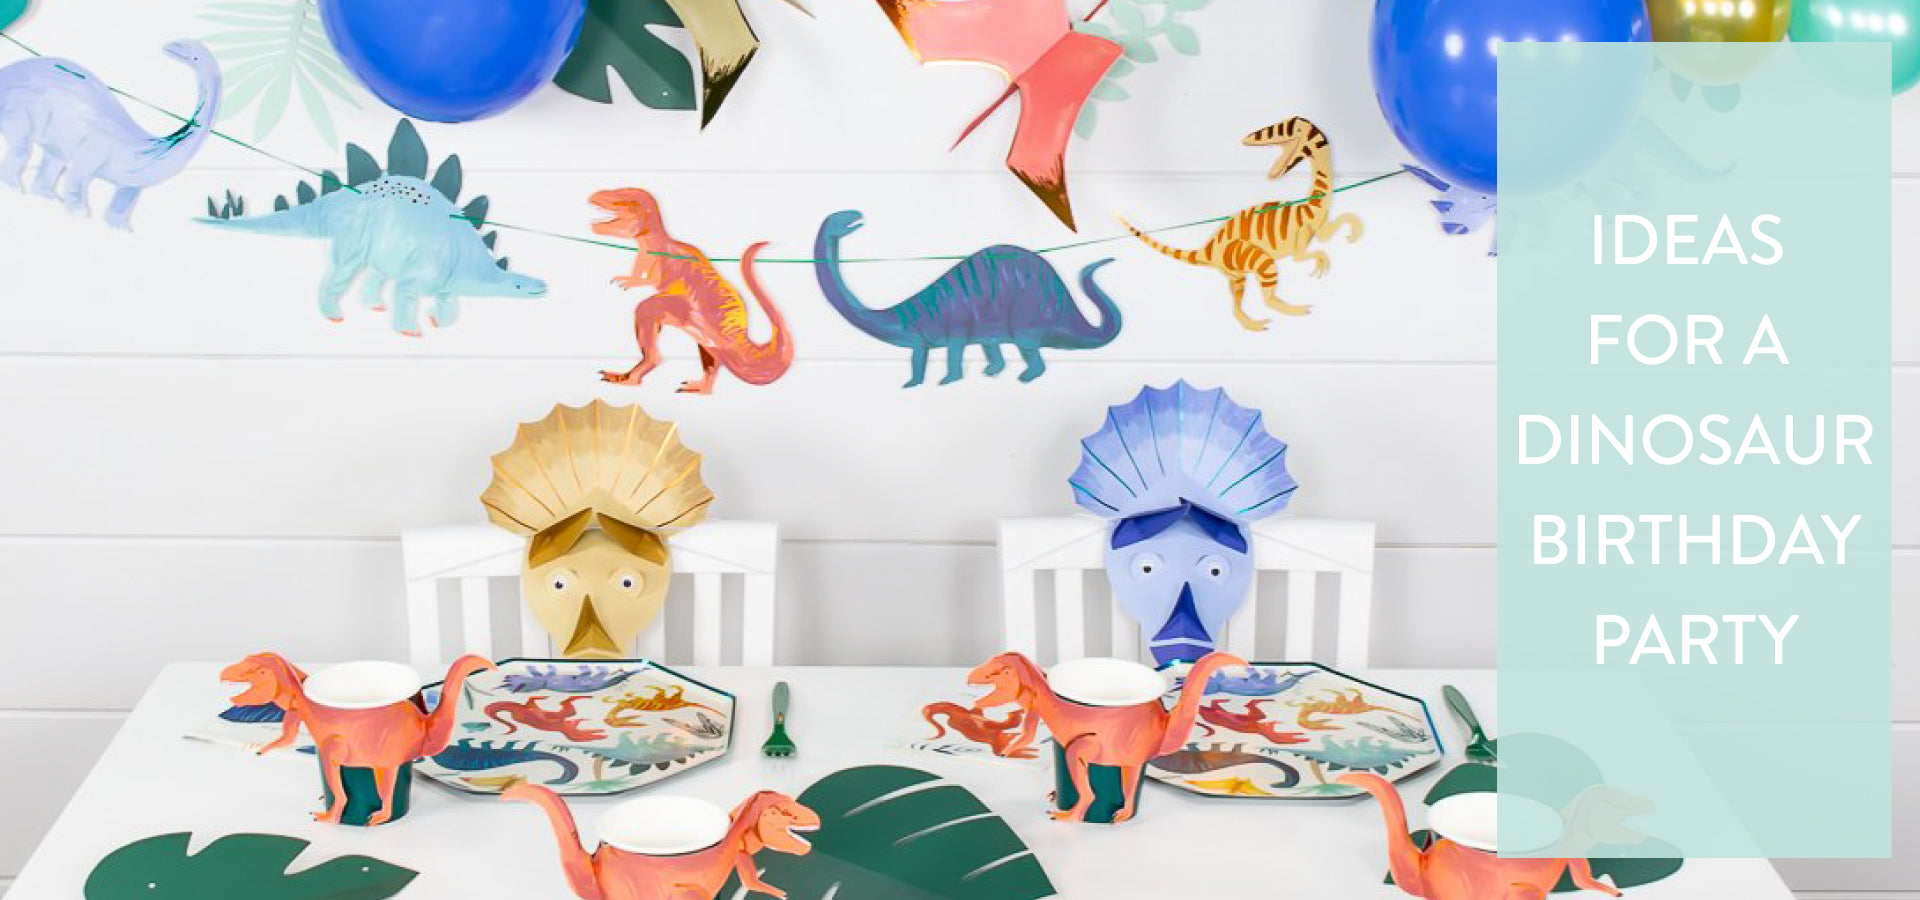 Ideas for a Dinosaur Birthday Party | The Party Darling